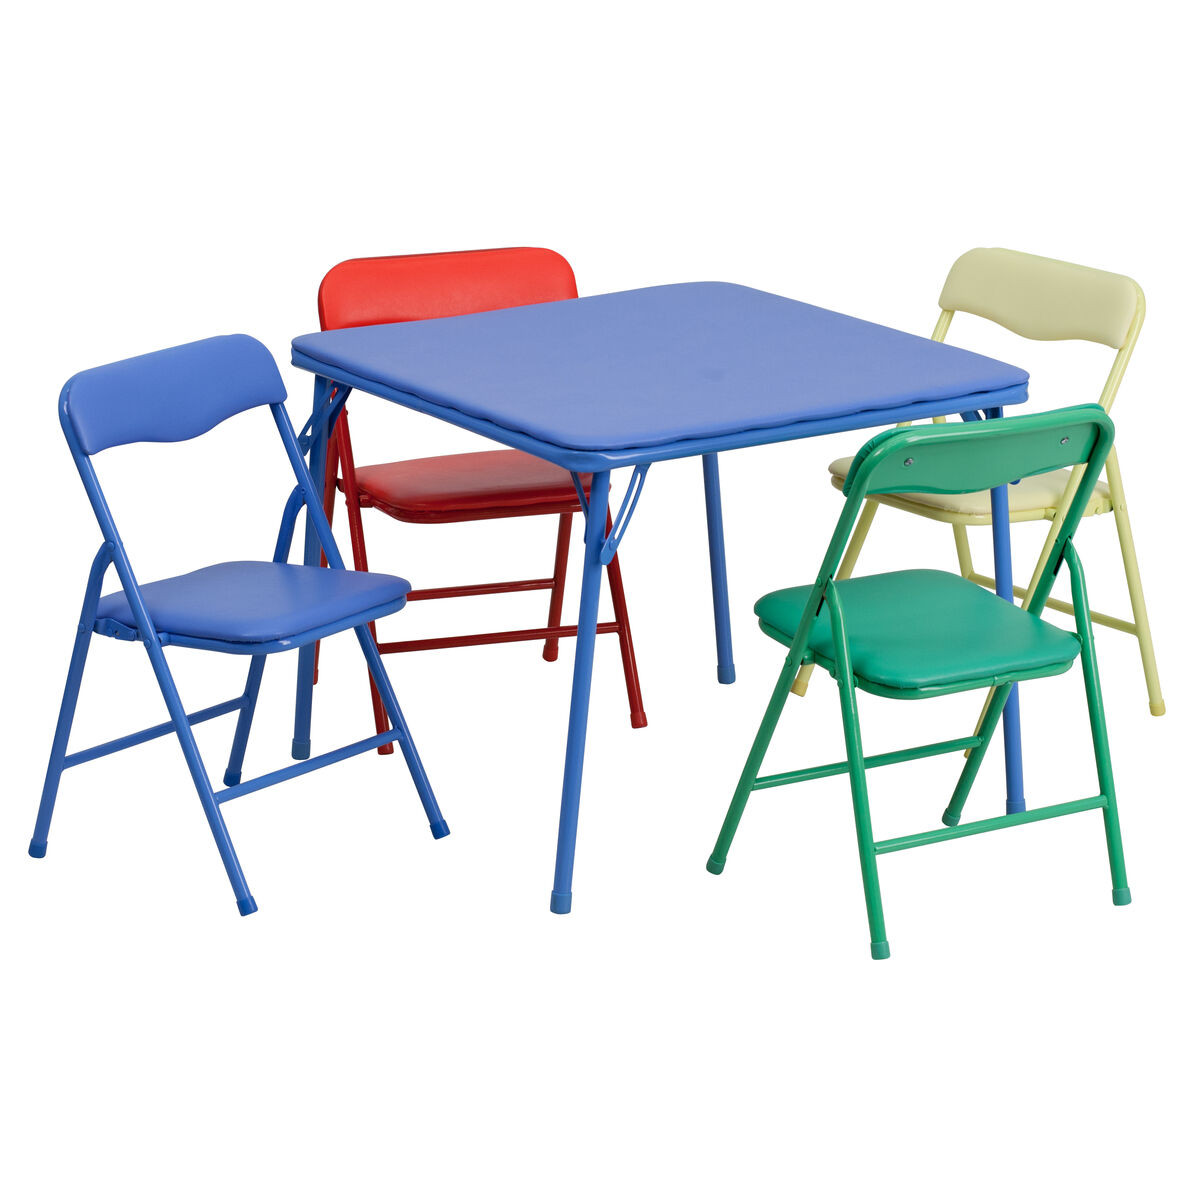 Kids Fold Up Table  Kids Colorful 5 Piece Folding Table and Chair Set